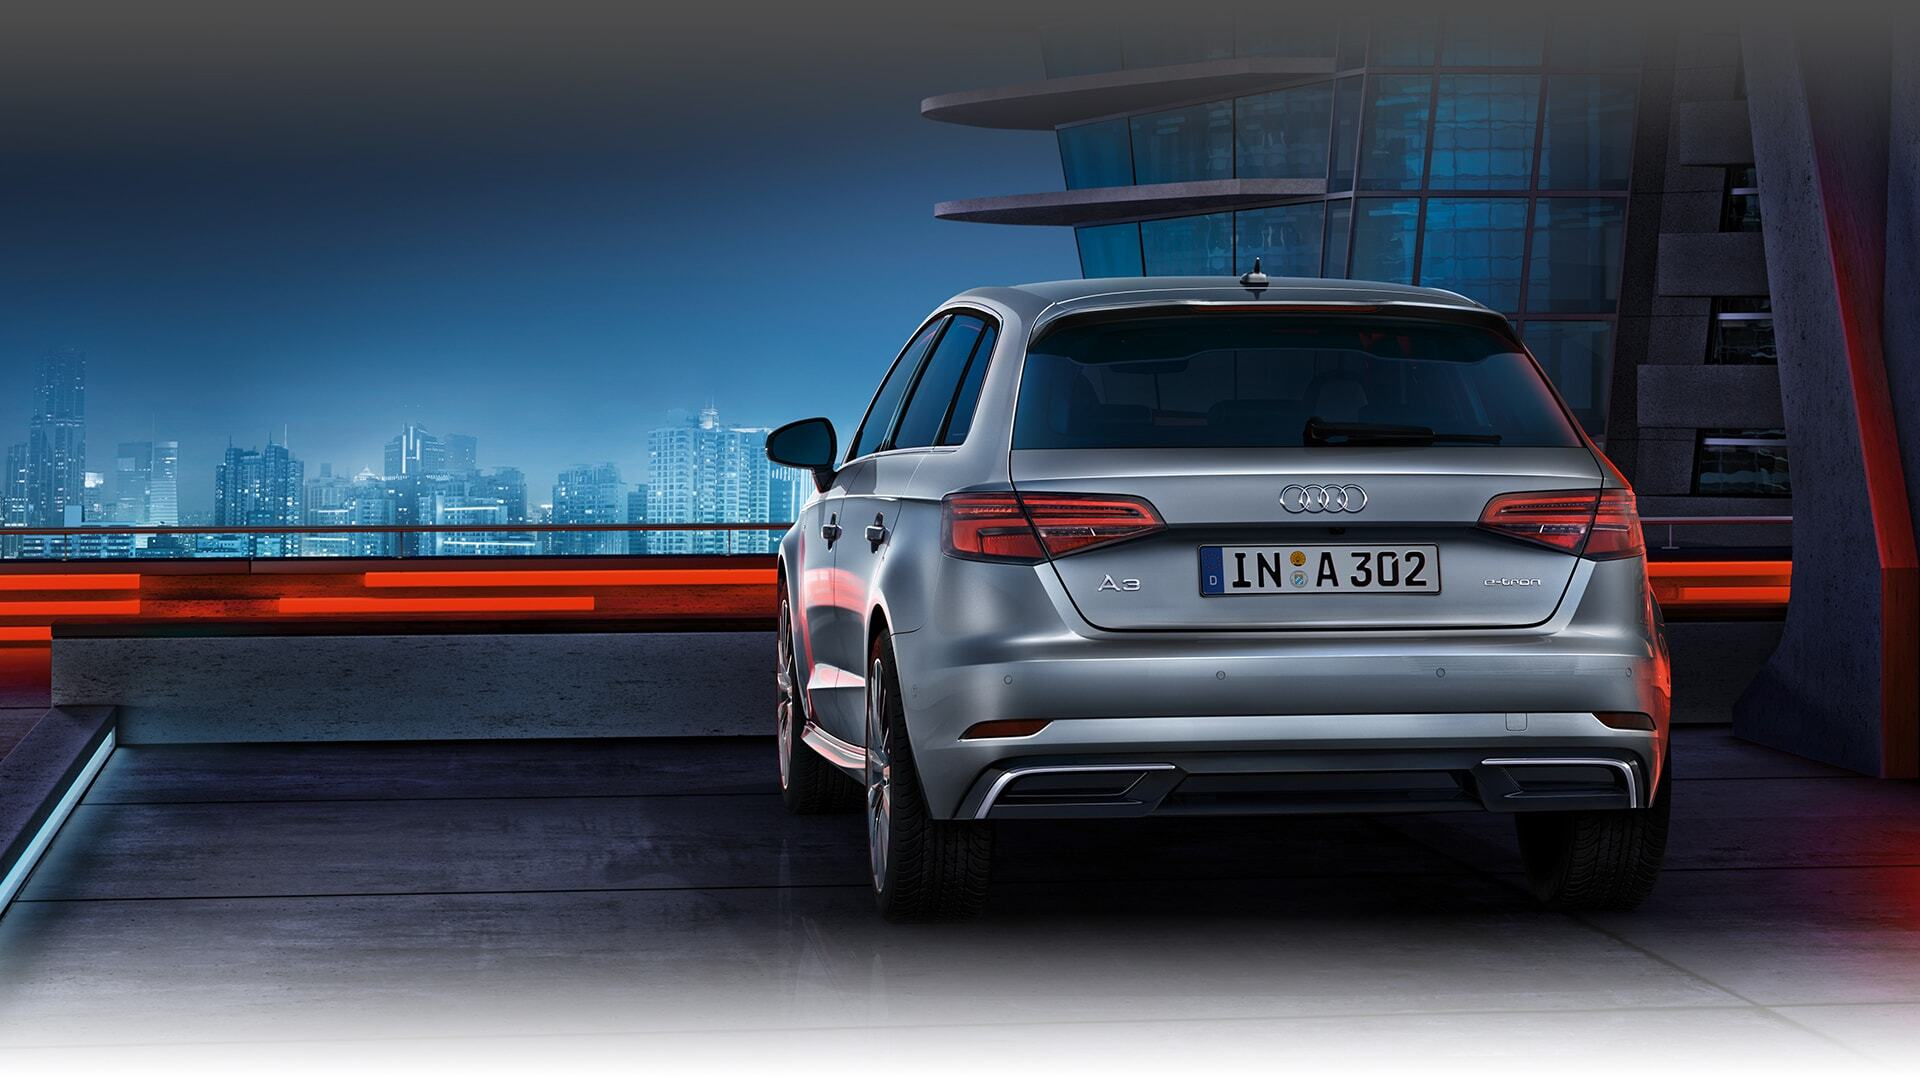 A backwards view of the 2018 Audi A3 Sportback e-tron available in Windsor Ontario